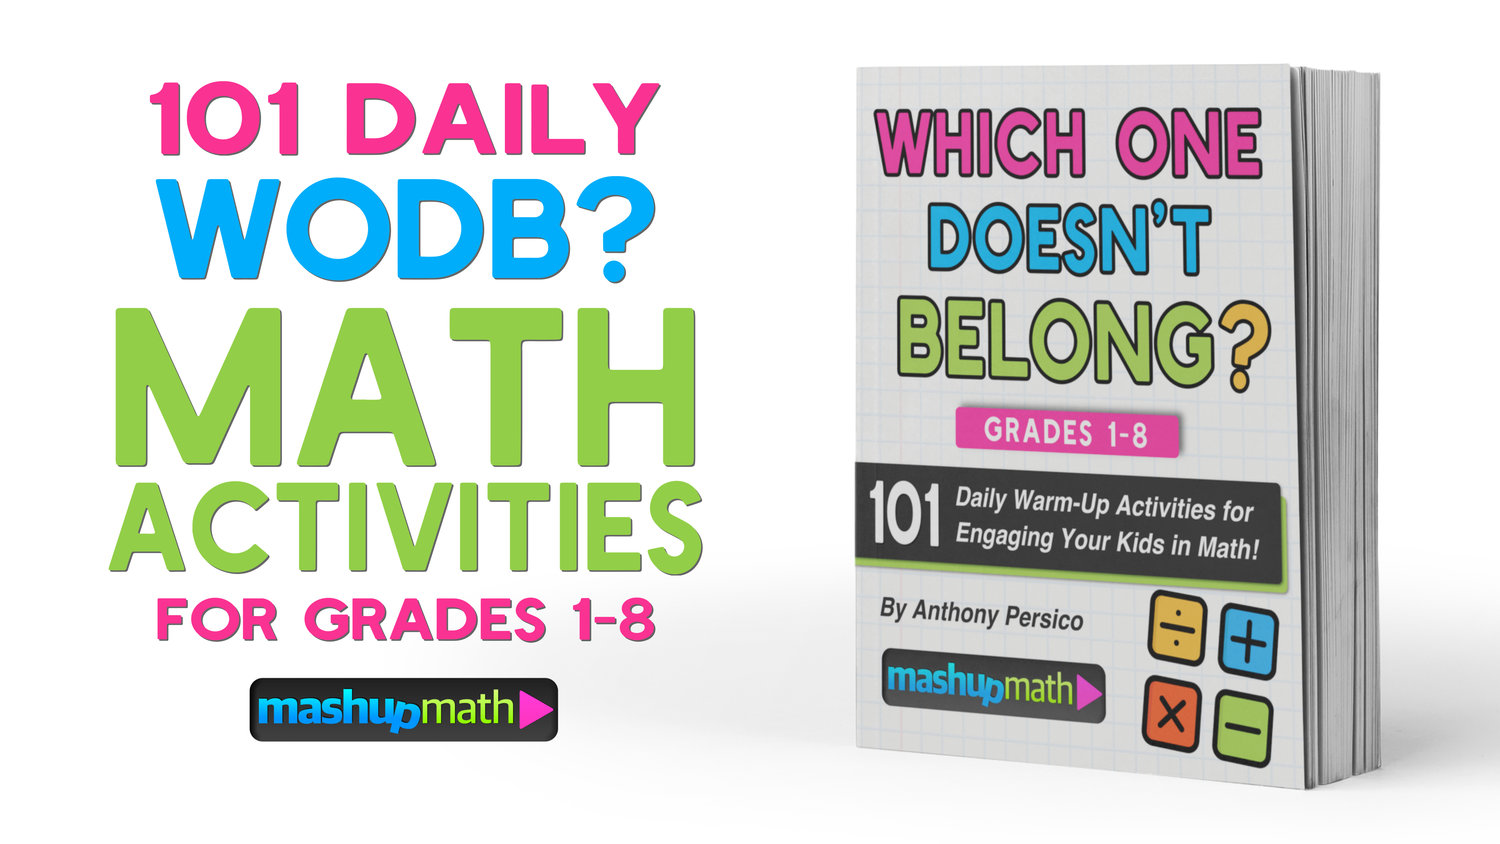 101 Daily 'Which One Doesn't Belong?' Activities for Grades